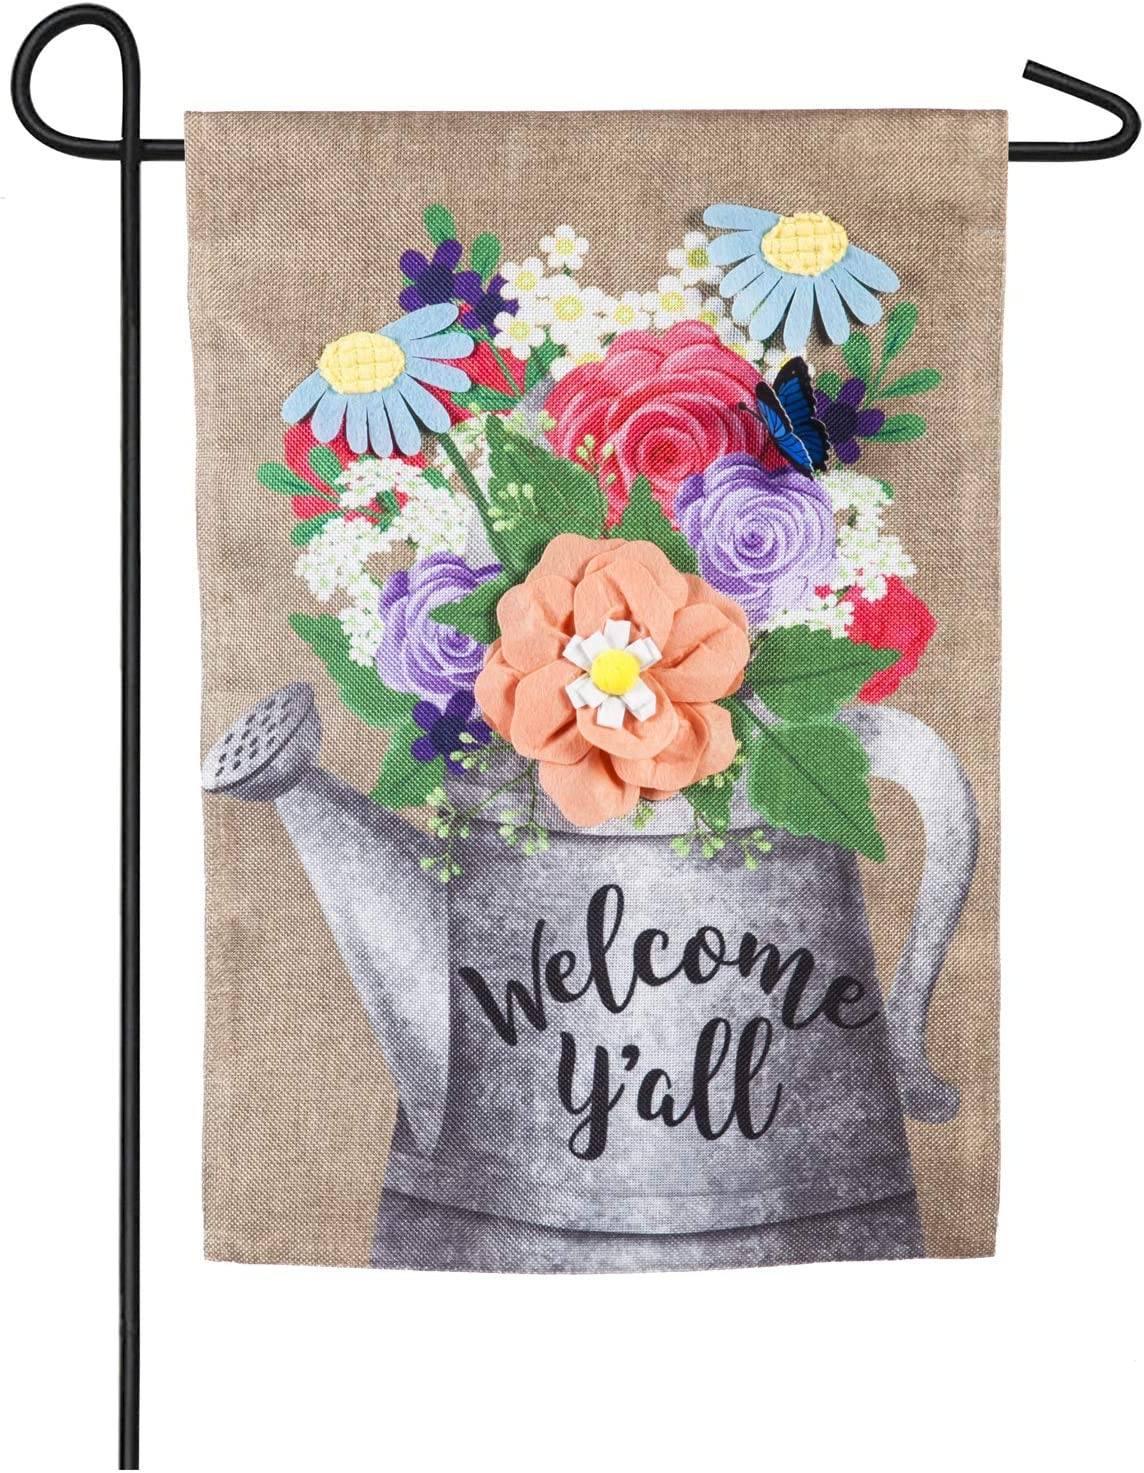 Welcome Y'all Watering Can Garden Burlap Flag - 13 x 1 x 18 Inches